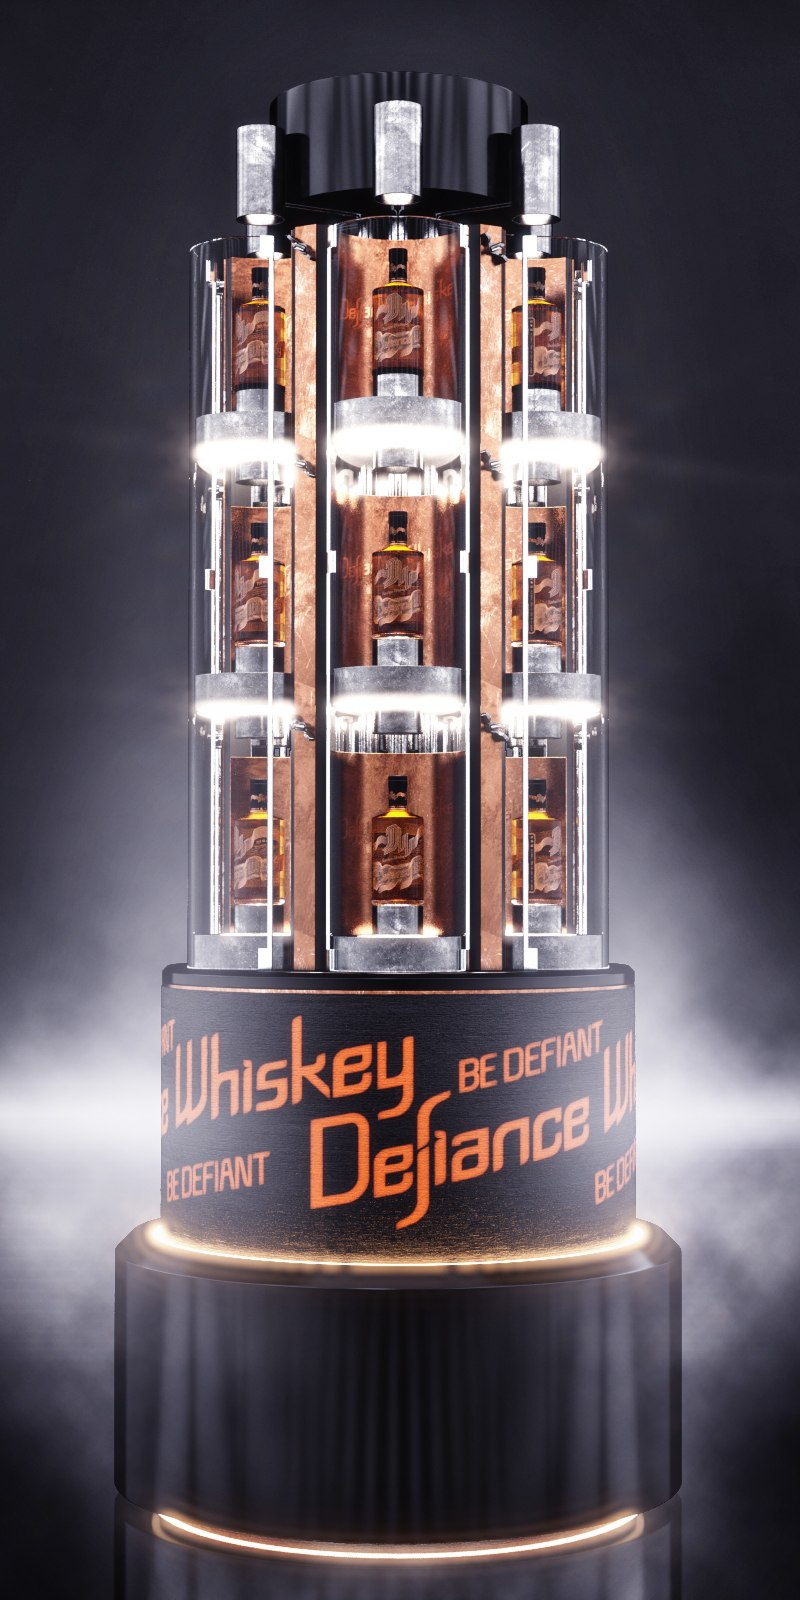 Retail, POS, Whiskey Defiance 4